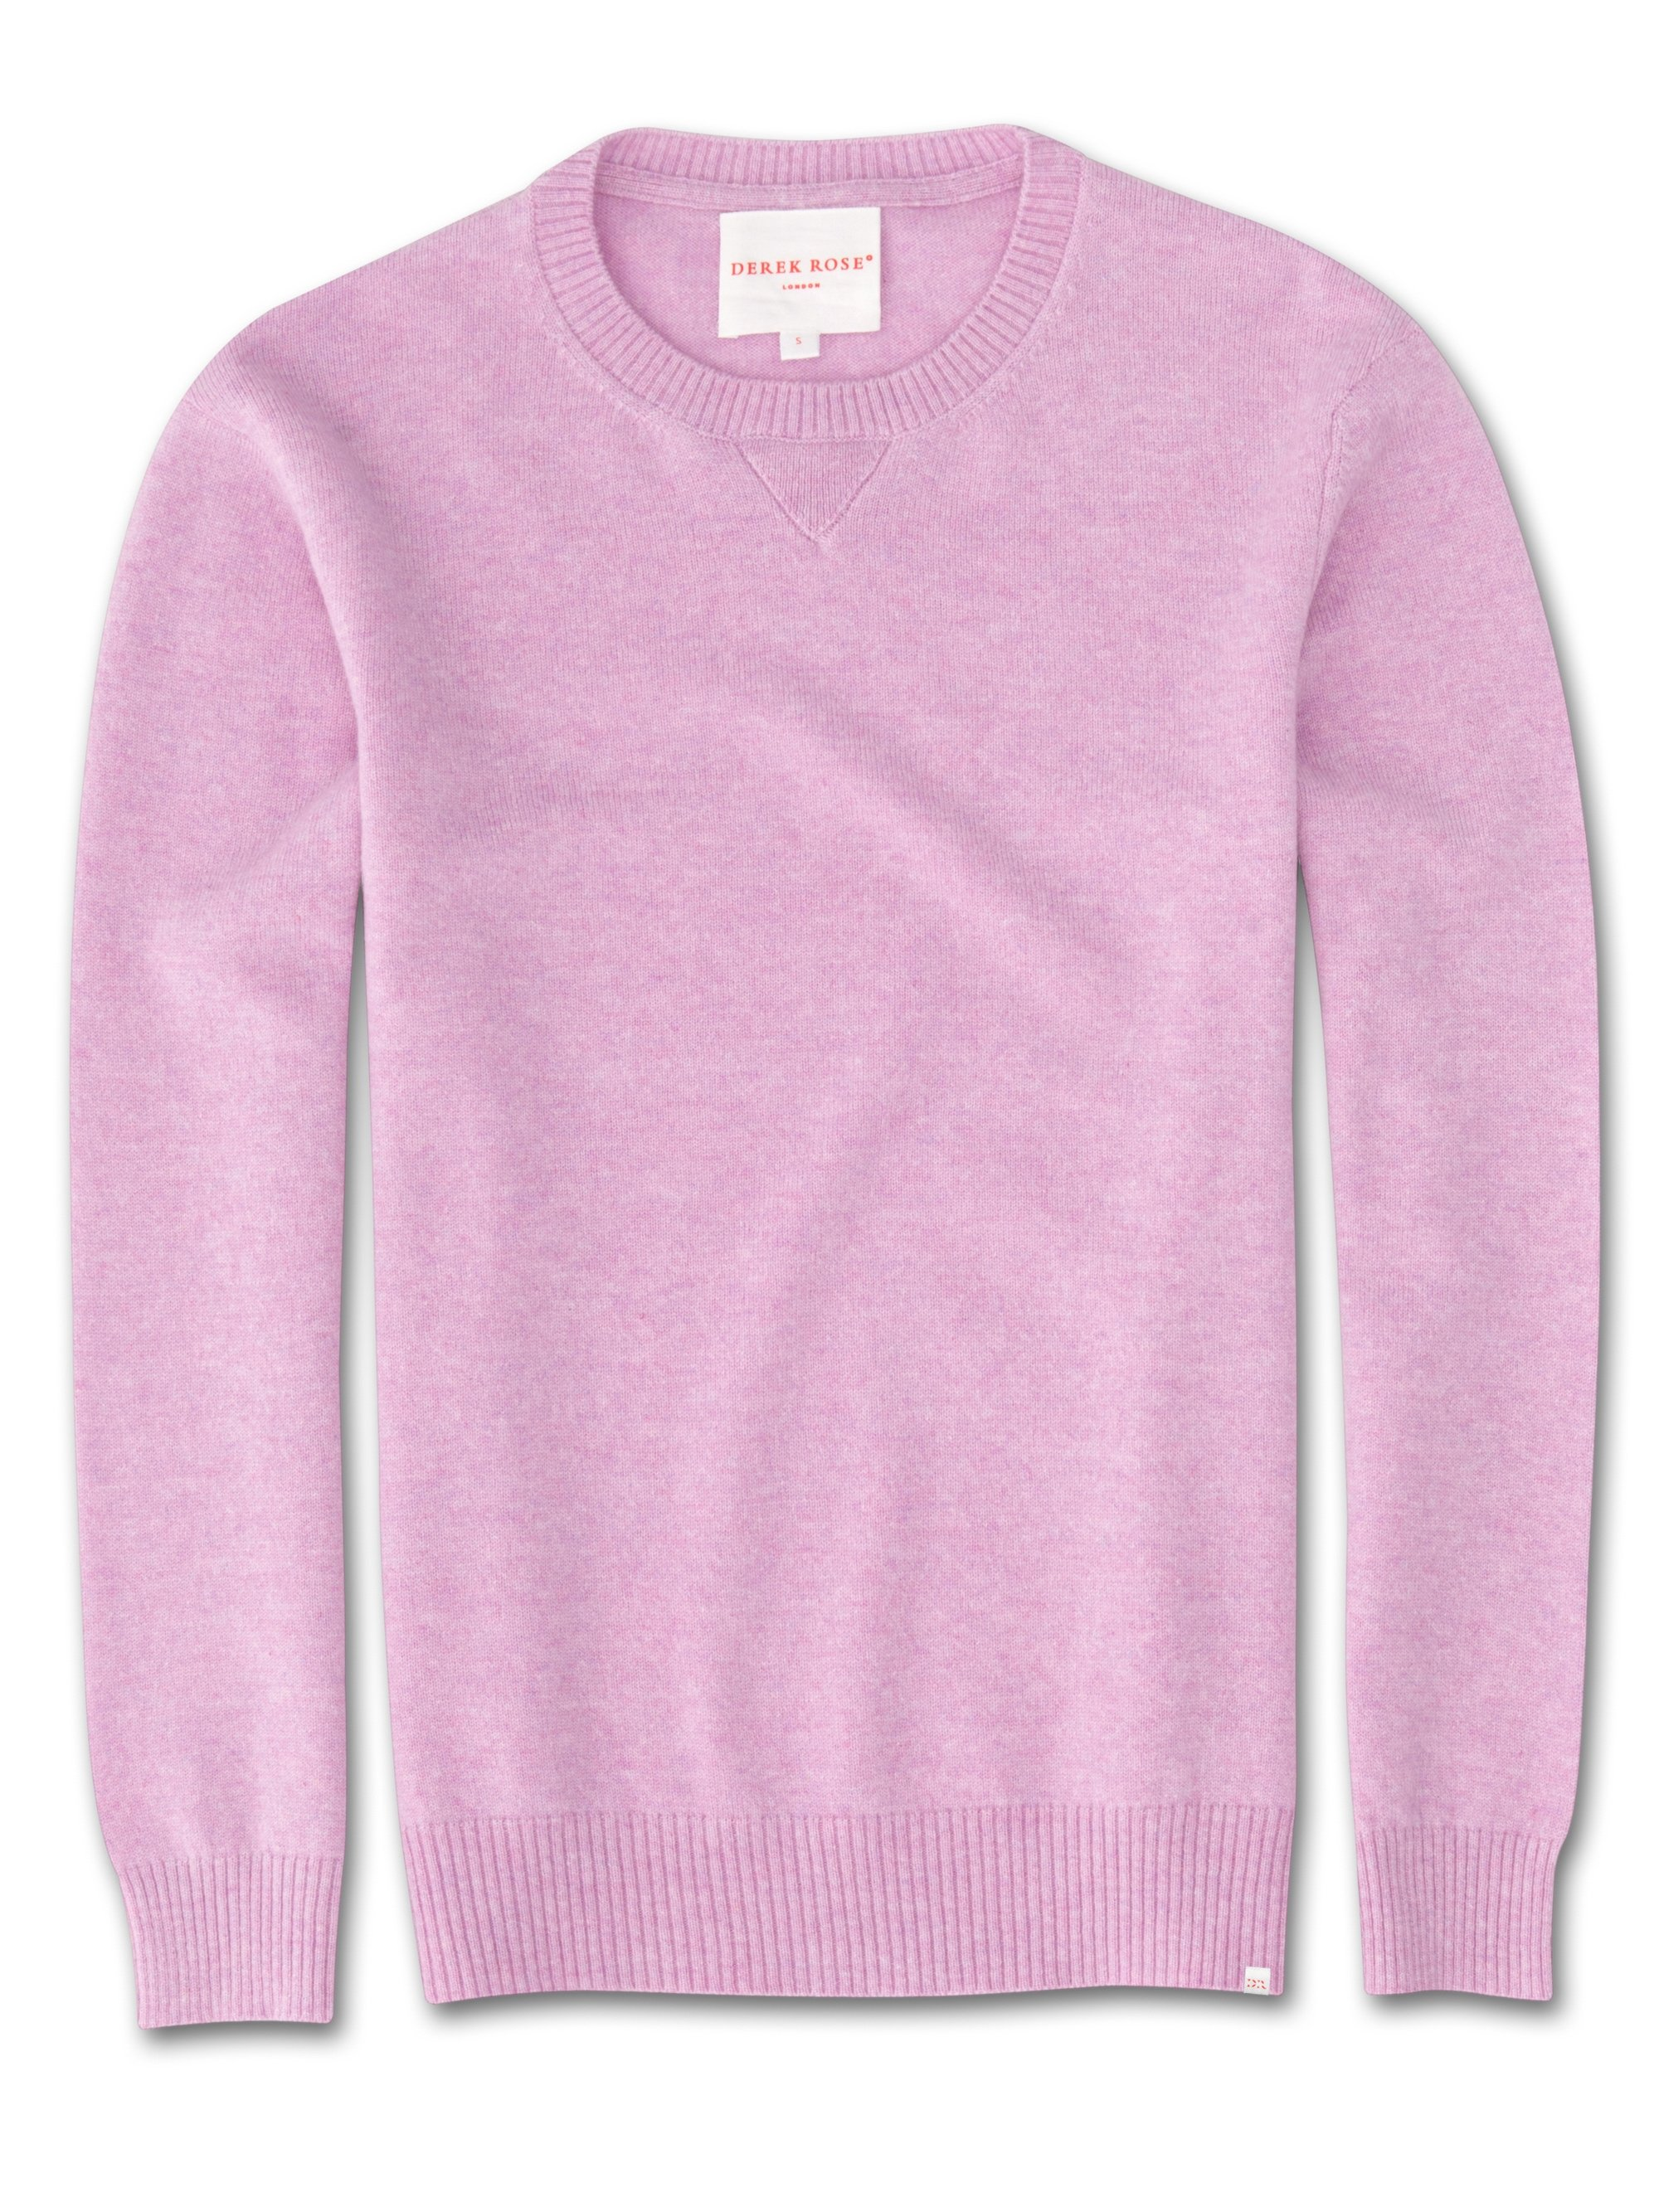 Women's Cashmere Sweater Finley Pure Cashmere Lilac